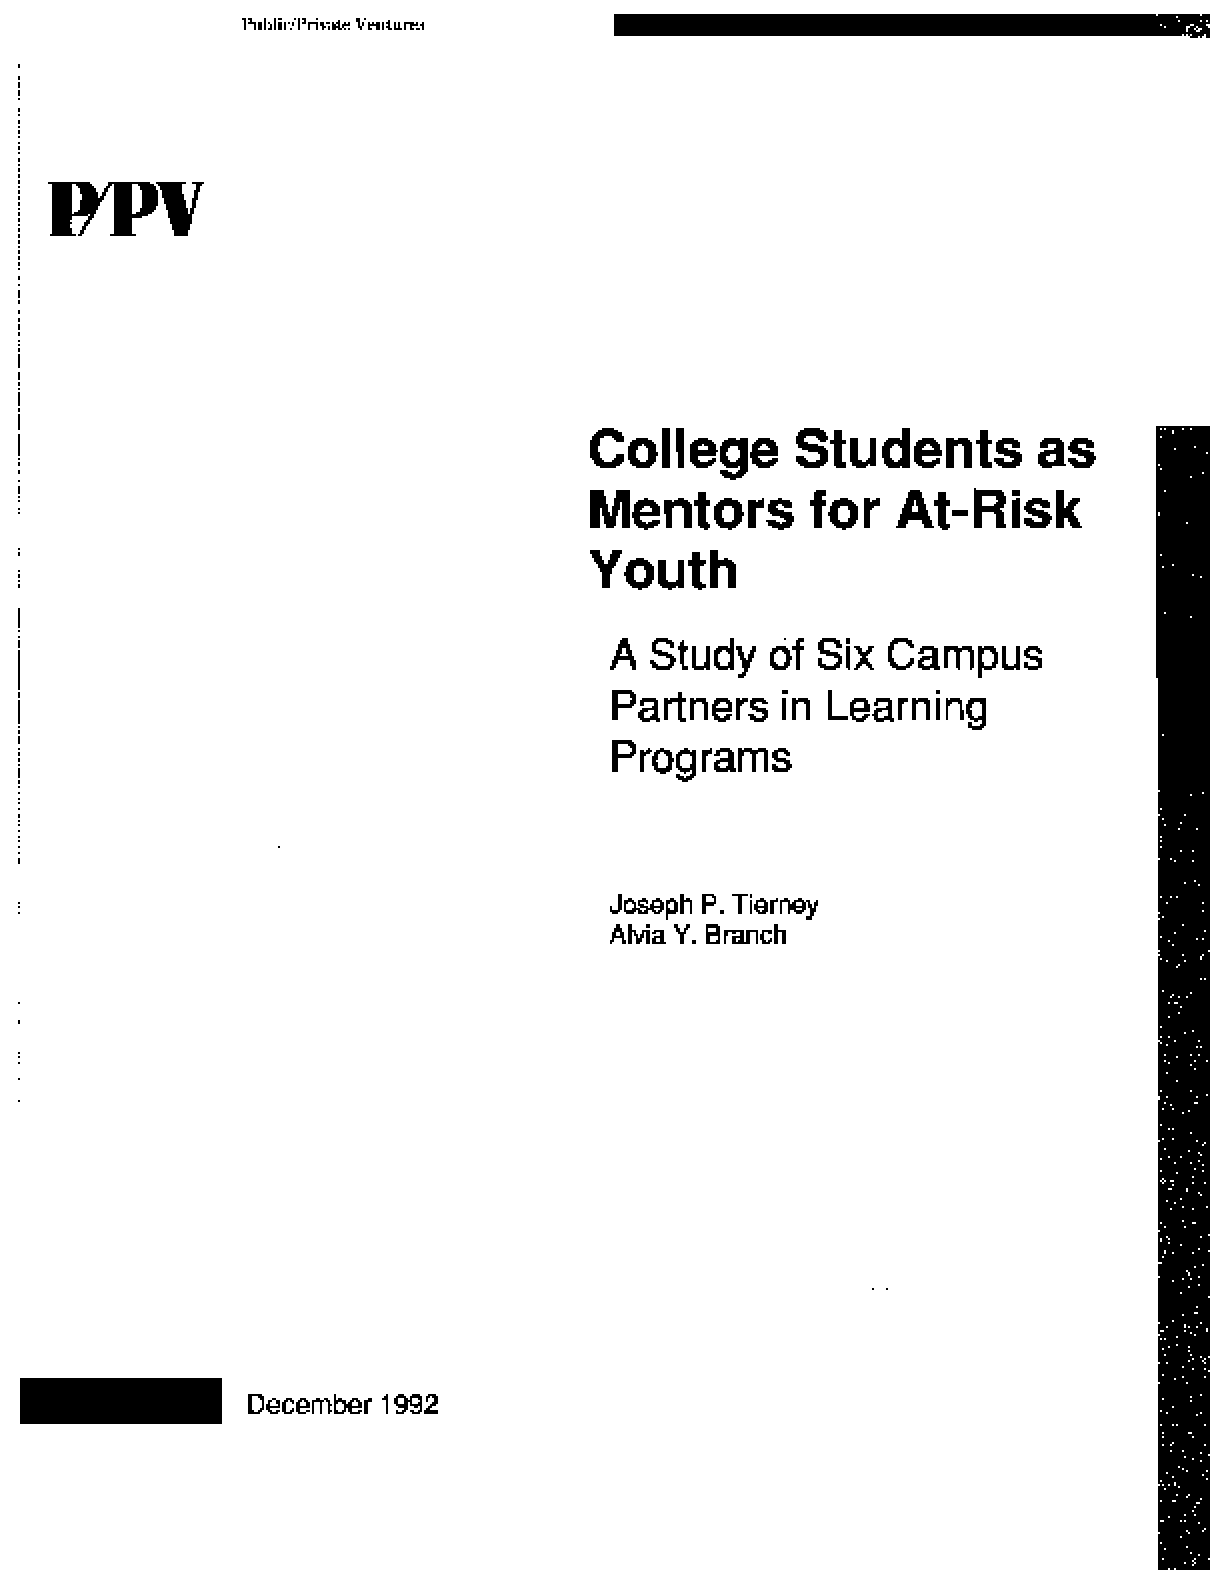 College Students as Mentors for At-Risk Youth: A Study of Six Campus Partners in Learning Programs